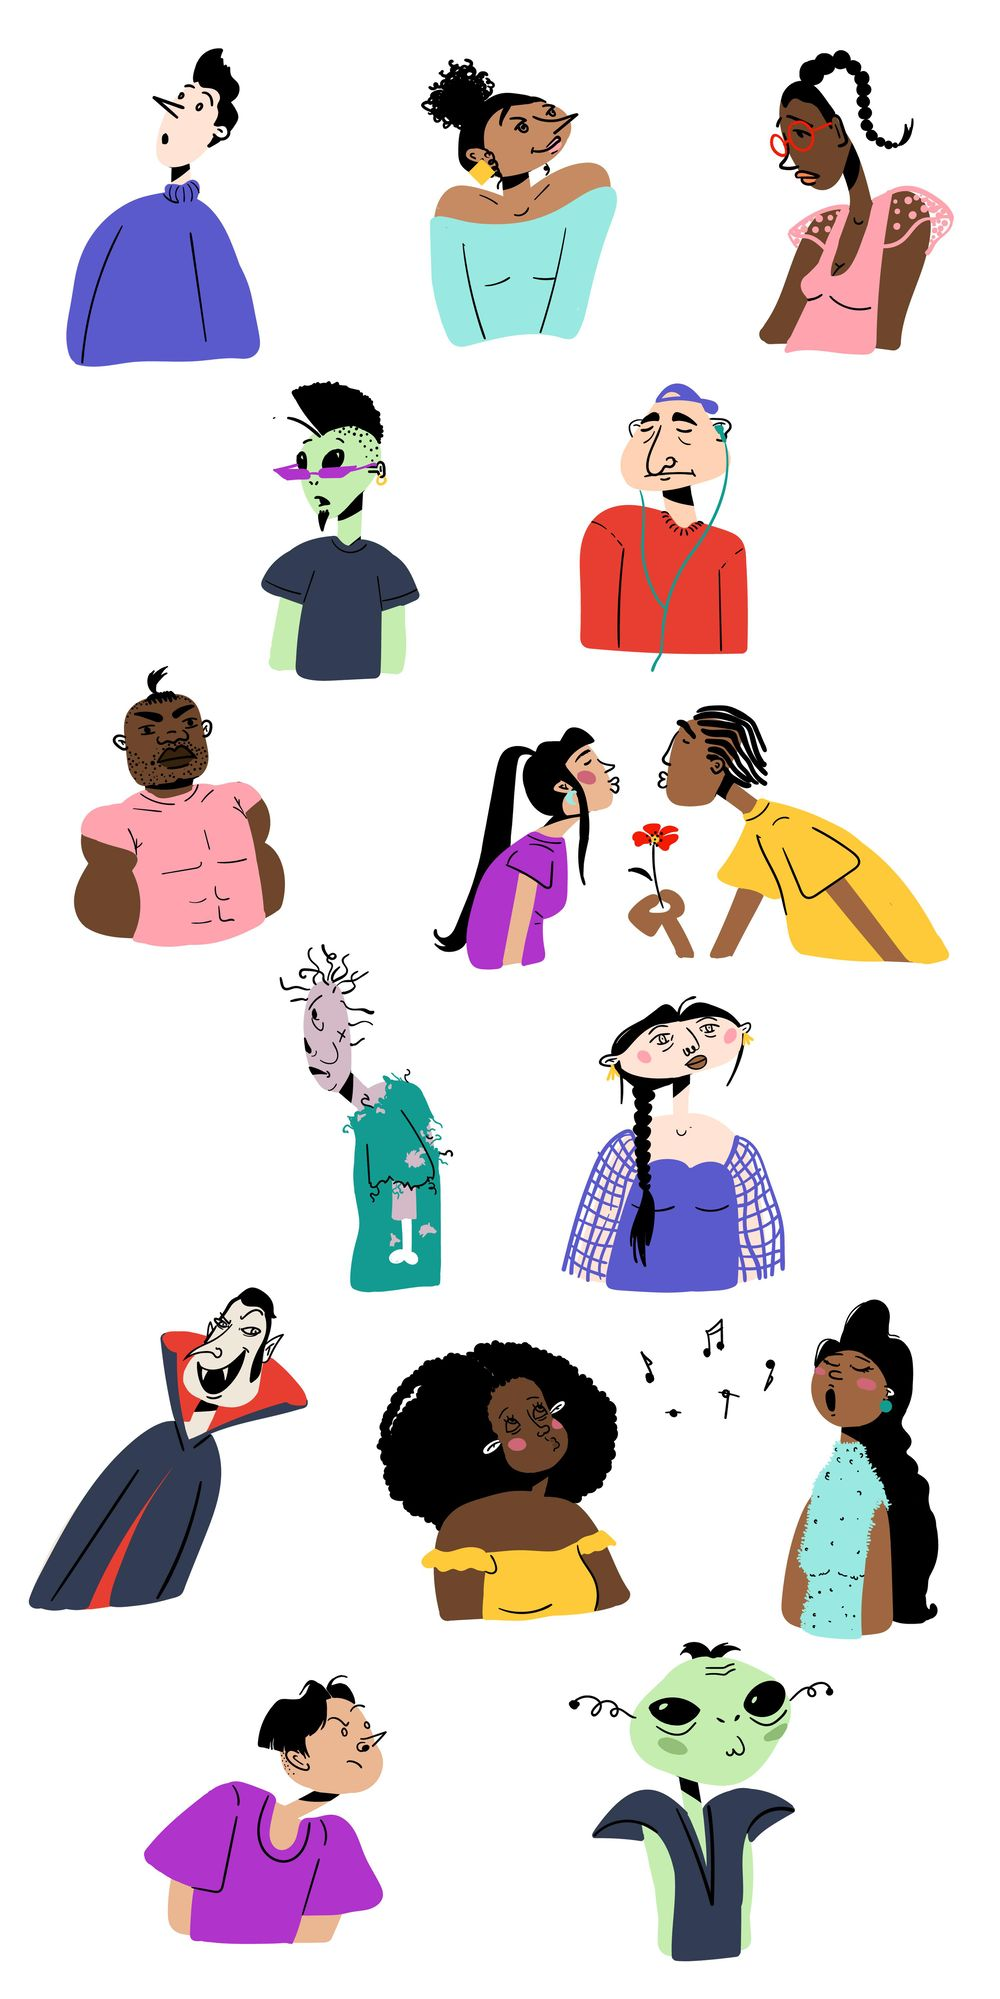 People Illustrations - image 6 - student project